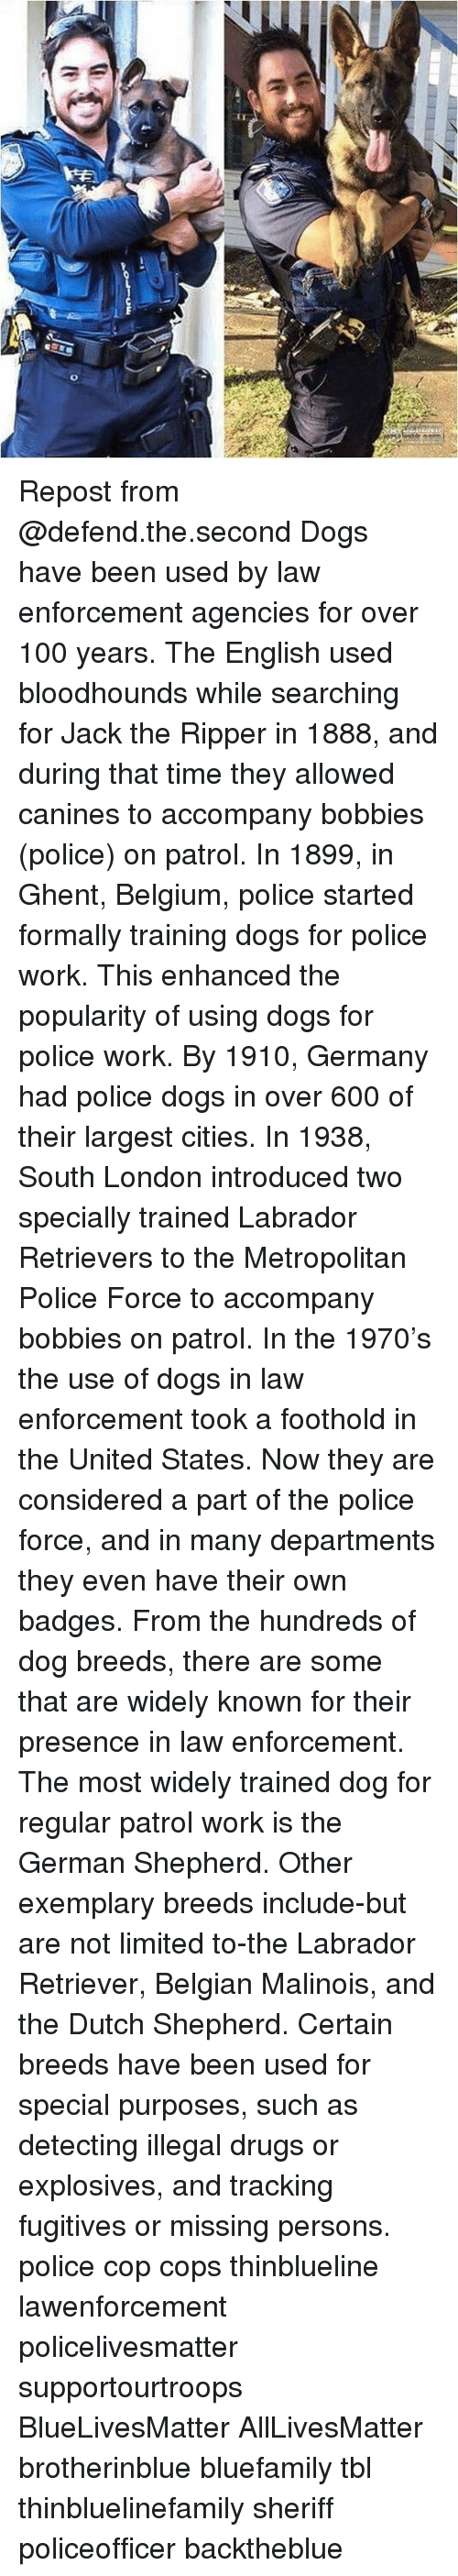 germane: Repost from @defend.the.second Dogs have been used by law enforcement agencies for over 100 years. The English used bloodhounds while searching for Jack the Ripper in 1888, and during that time they allowed canines to accompany bobbies (police) on patrol. In 1899, in Ghent, Belgium, police started formally training dogs for police work. This enhanced the popularity of using dogs for police work. By 1910, Germany had police dogs in over 600 of their largest cities. In 1938, South London introduced two specially trained Labrador Retrievers to the Metropolitan Police Force to accompany bobbies on patrol. In the 1970's the use of dogs in law enforcement took a foothold in the United States. Now they are considered a part of the police force, and in many departments they even have their own badges. From the hundreds of dog breeds, there are some that are widely known for their presence in law enforcement. The most widely trained dog for regular patrol work is the German Shepherd. Other exemplary breeds include-but are not limited to-the Labrador Retriever, Belgian Malinois, and the Dutch Shepherd. Certain breeds have been used for special purposes, such as detecting illegal drugs or explosives, and tracking fugitives or missing persons. police cop cops thinblueline lawenforcement policelivesmatter supportourtroops BlueLivesMatter AllLivesMatter brotherinblue bluefamily tbl thinbluelinefamily sheriff policeofficer backtheblue